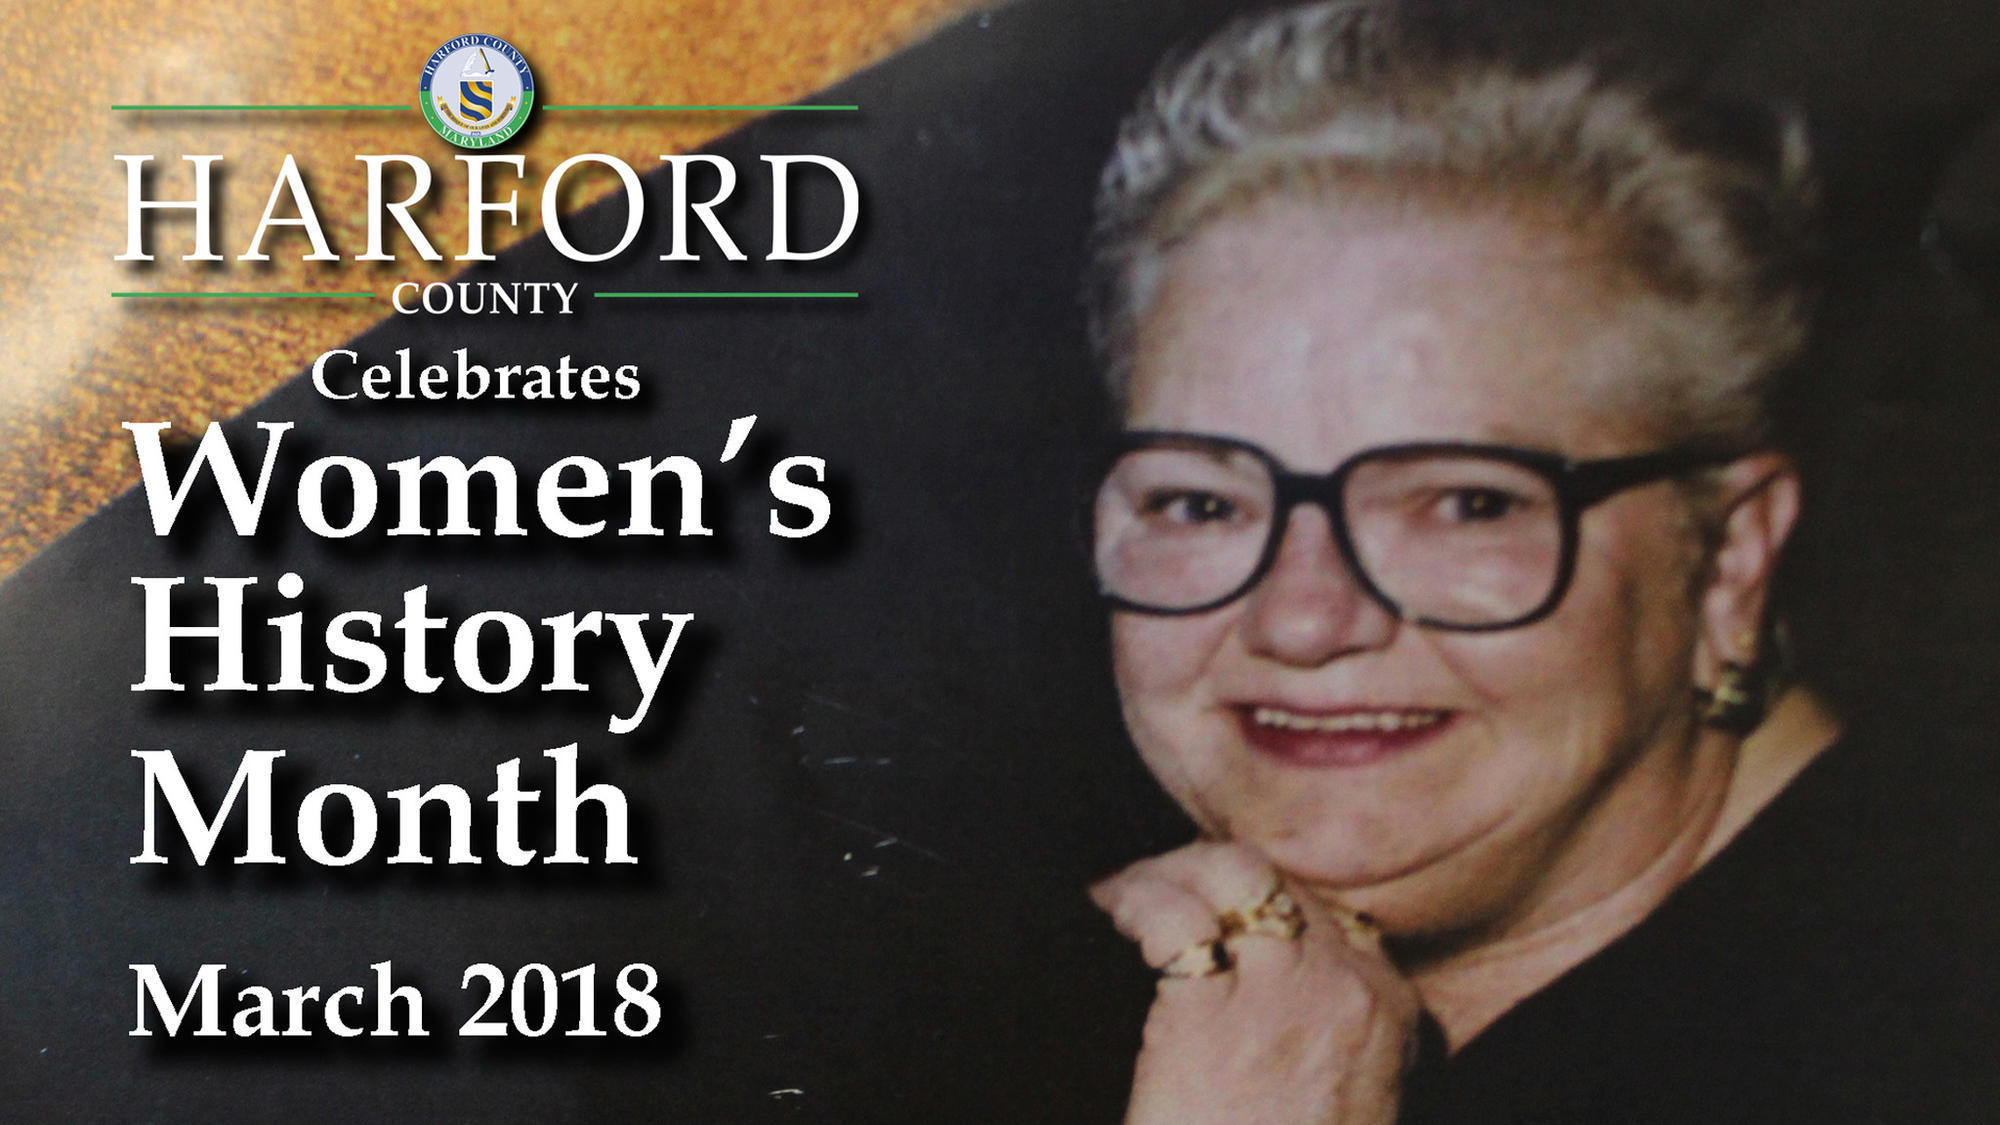 Harford Women's History Month video honors the late Veronica 'Roni' Chenowith